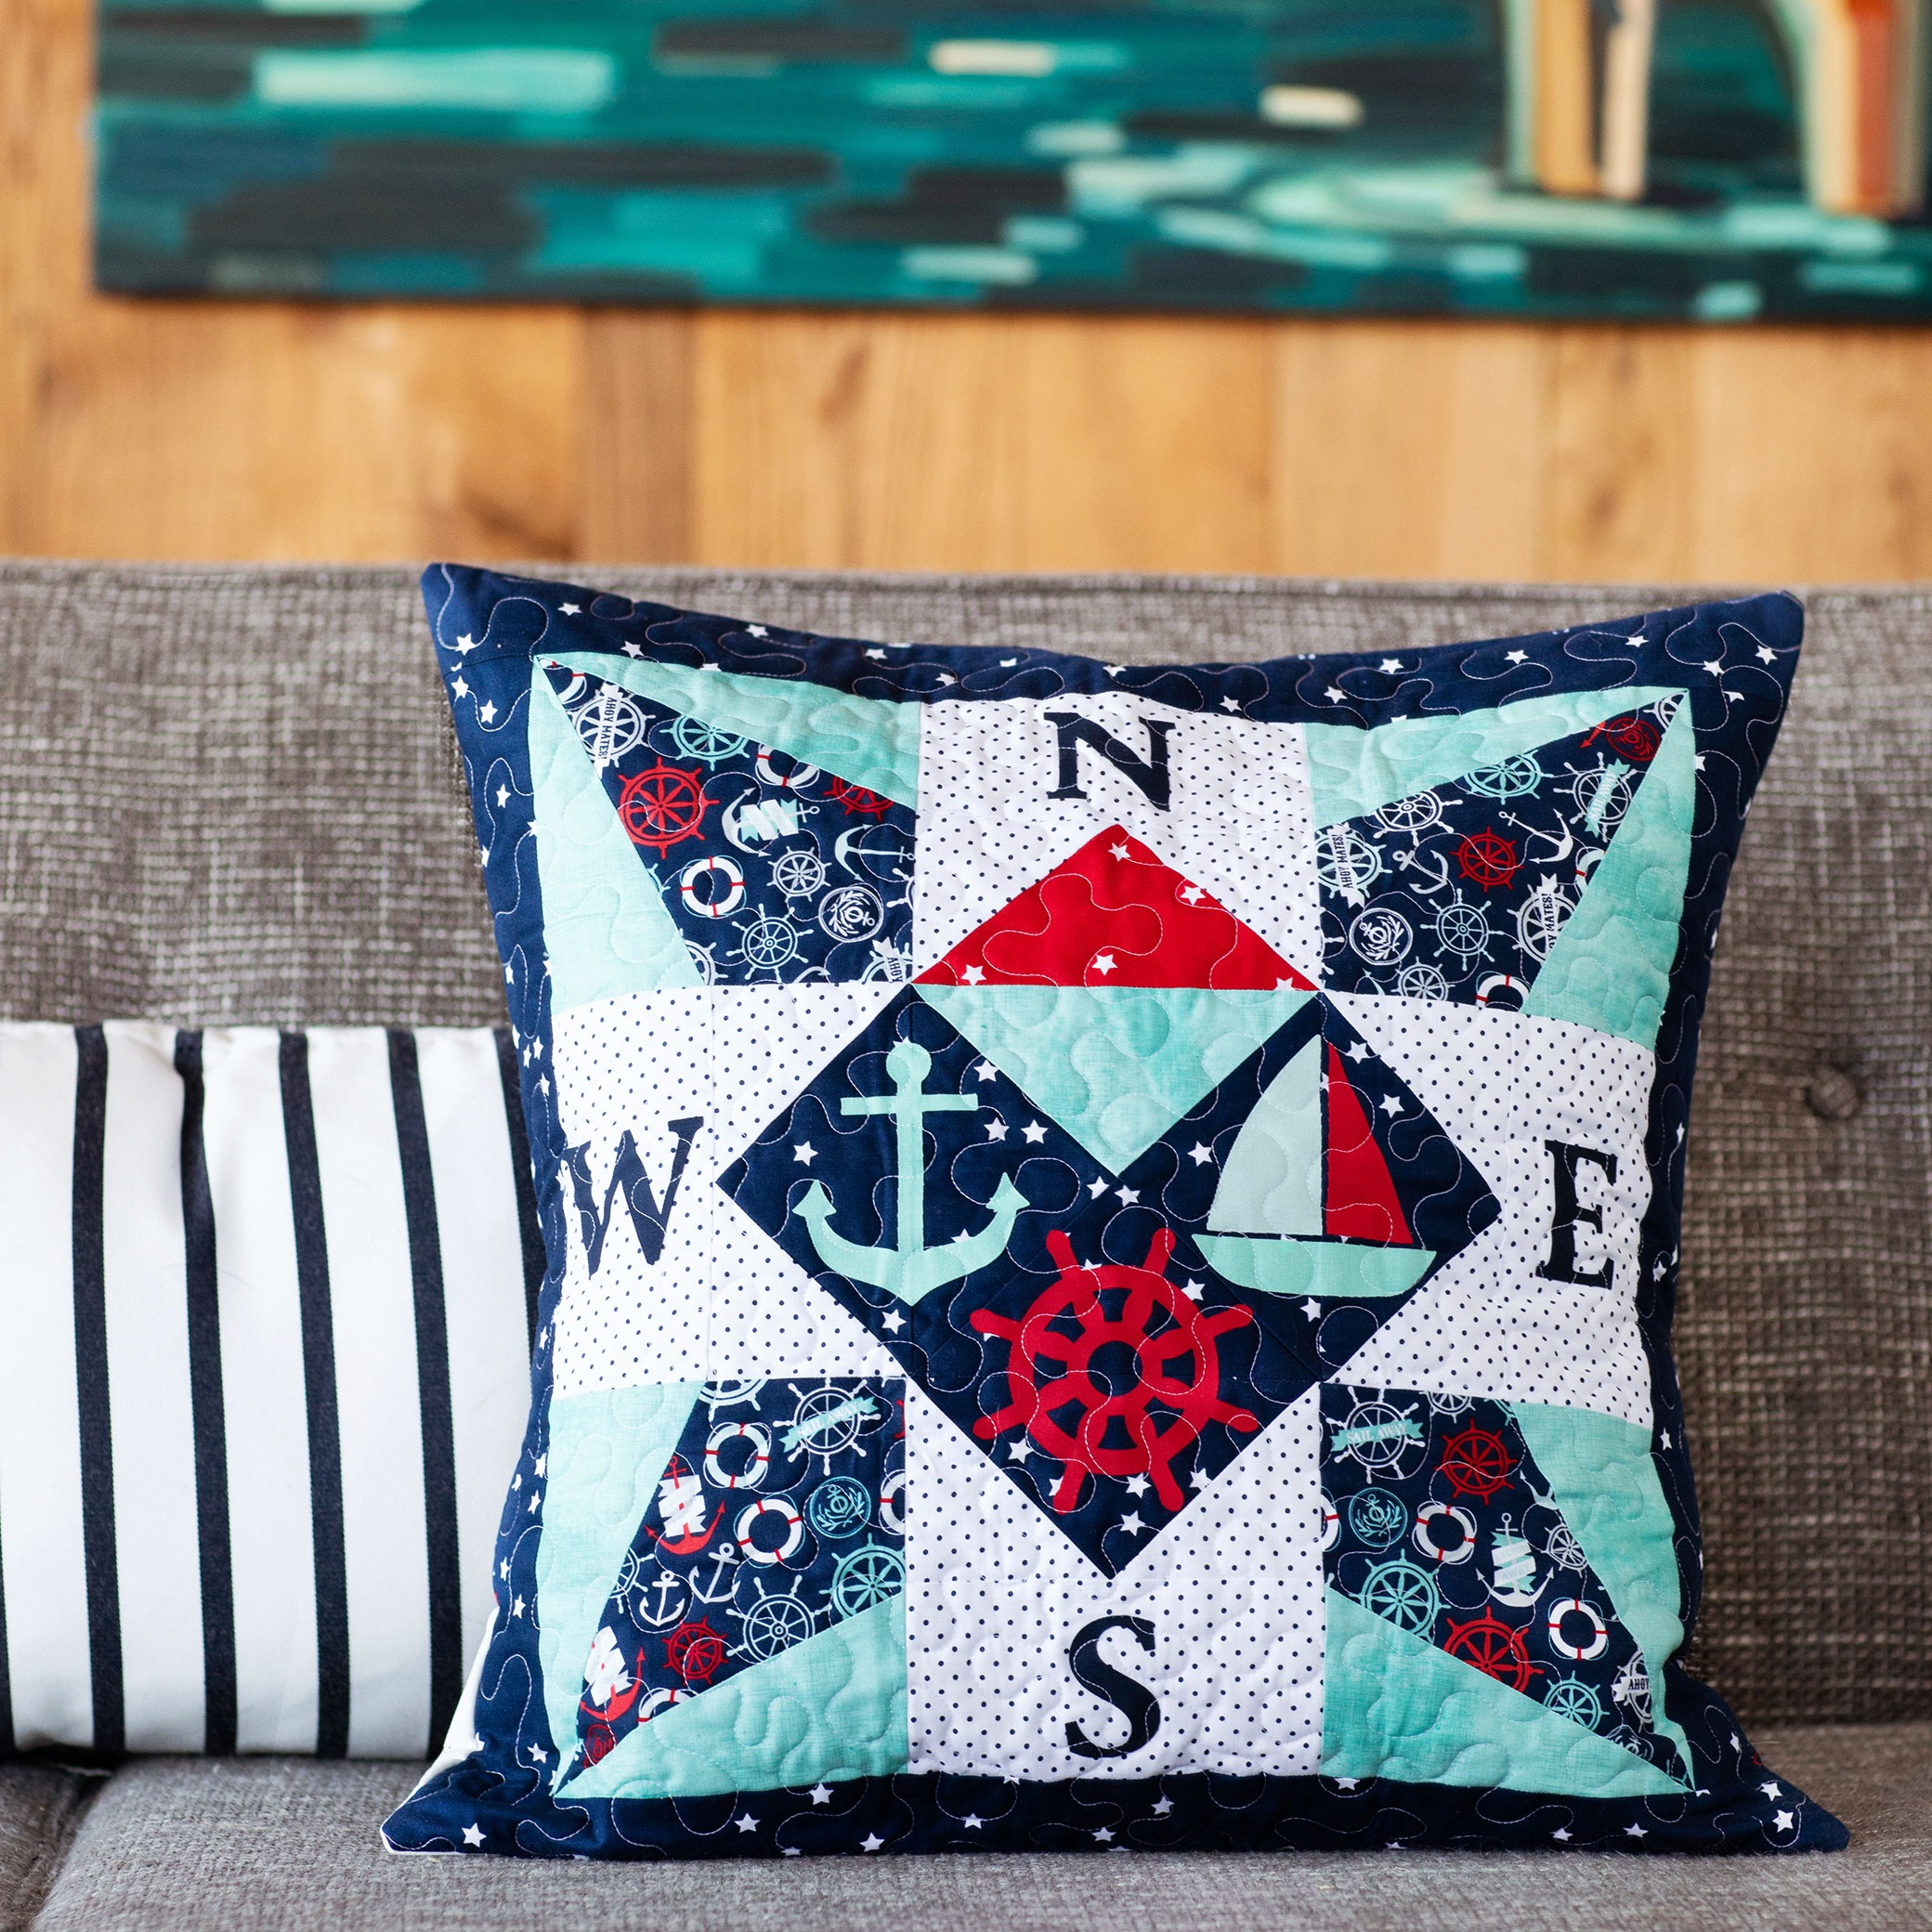 pieced oversized pillow with compass shape and nautical applique shapes on grey couch